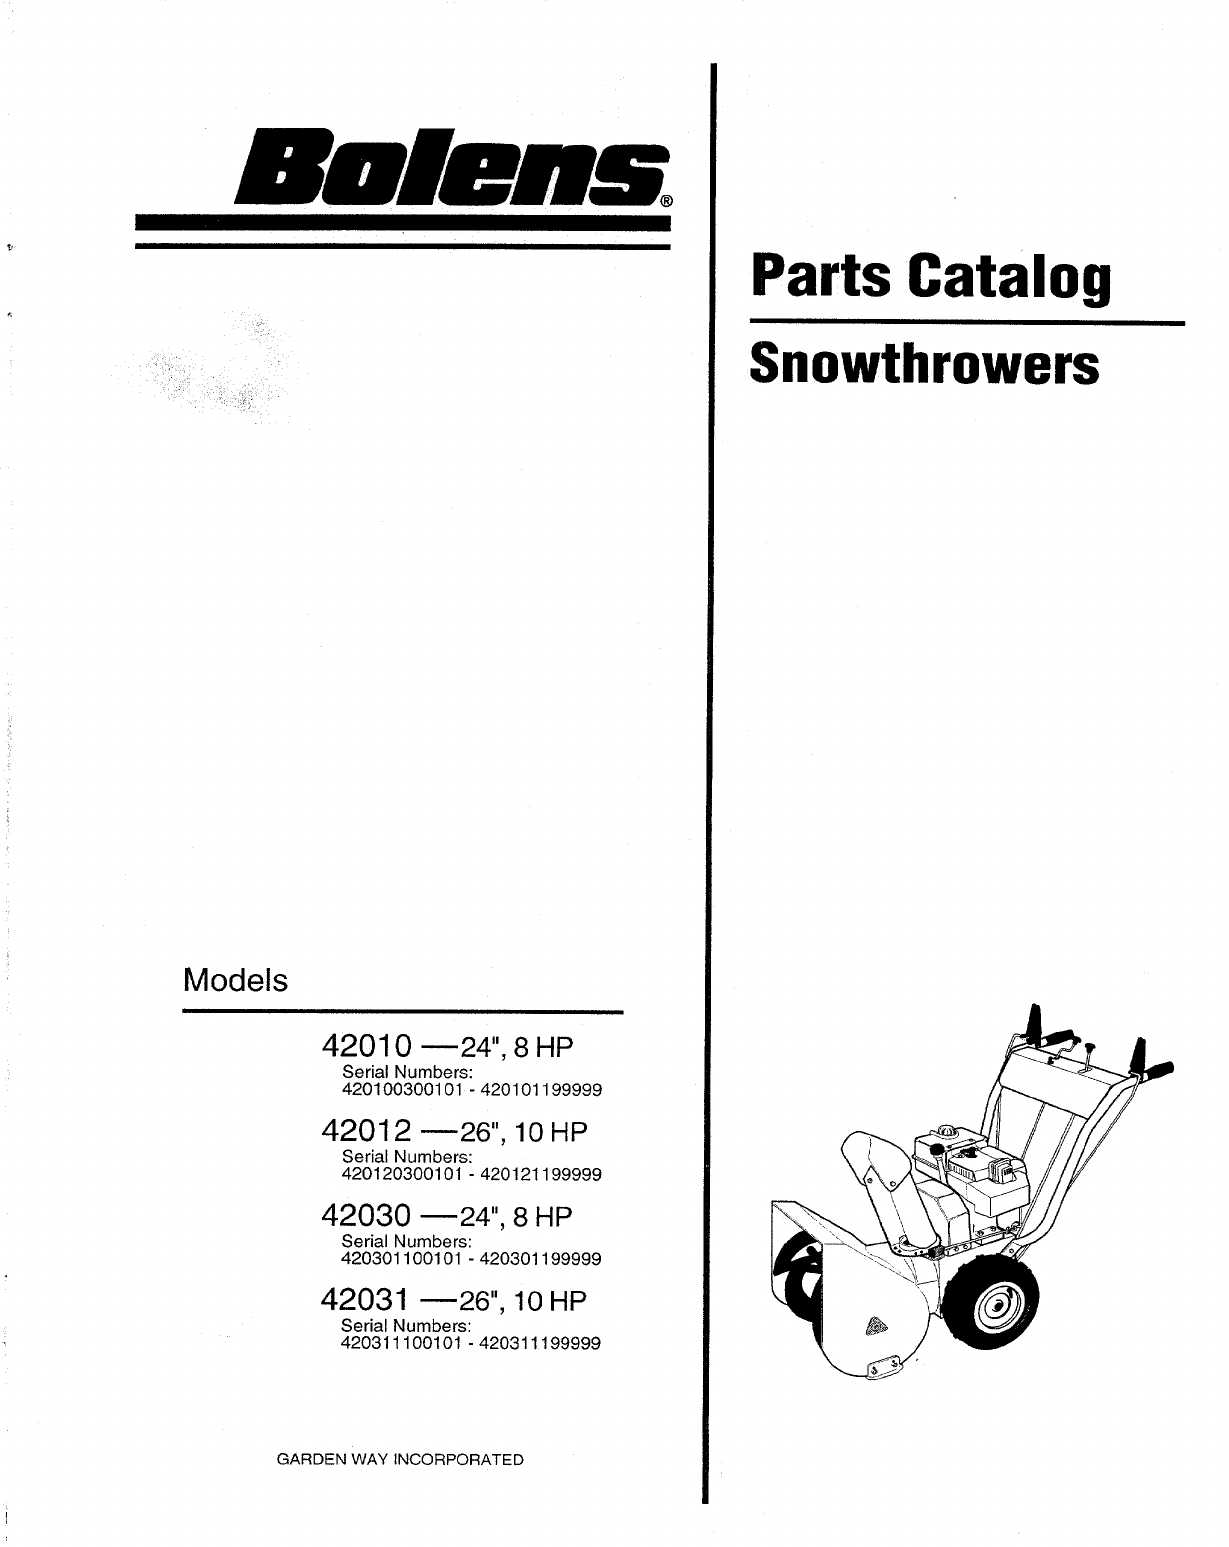 Bolens snow blower 42010 user guide manualsonline of 12 publicscrutiny Choice Image